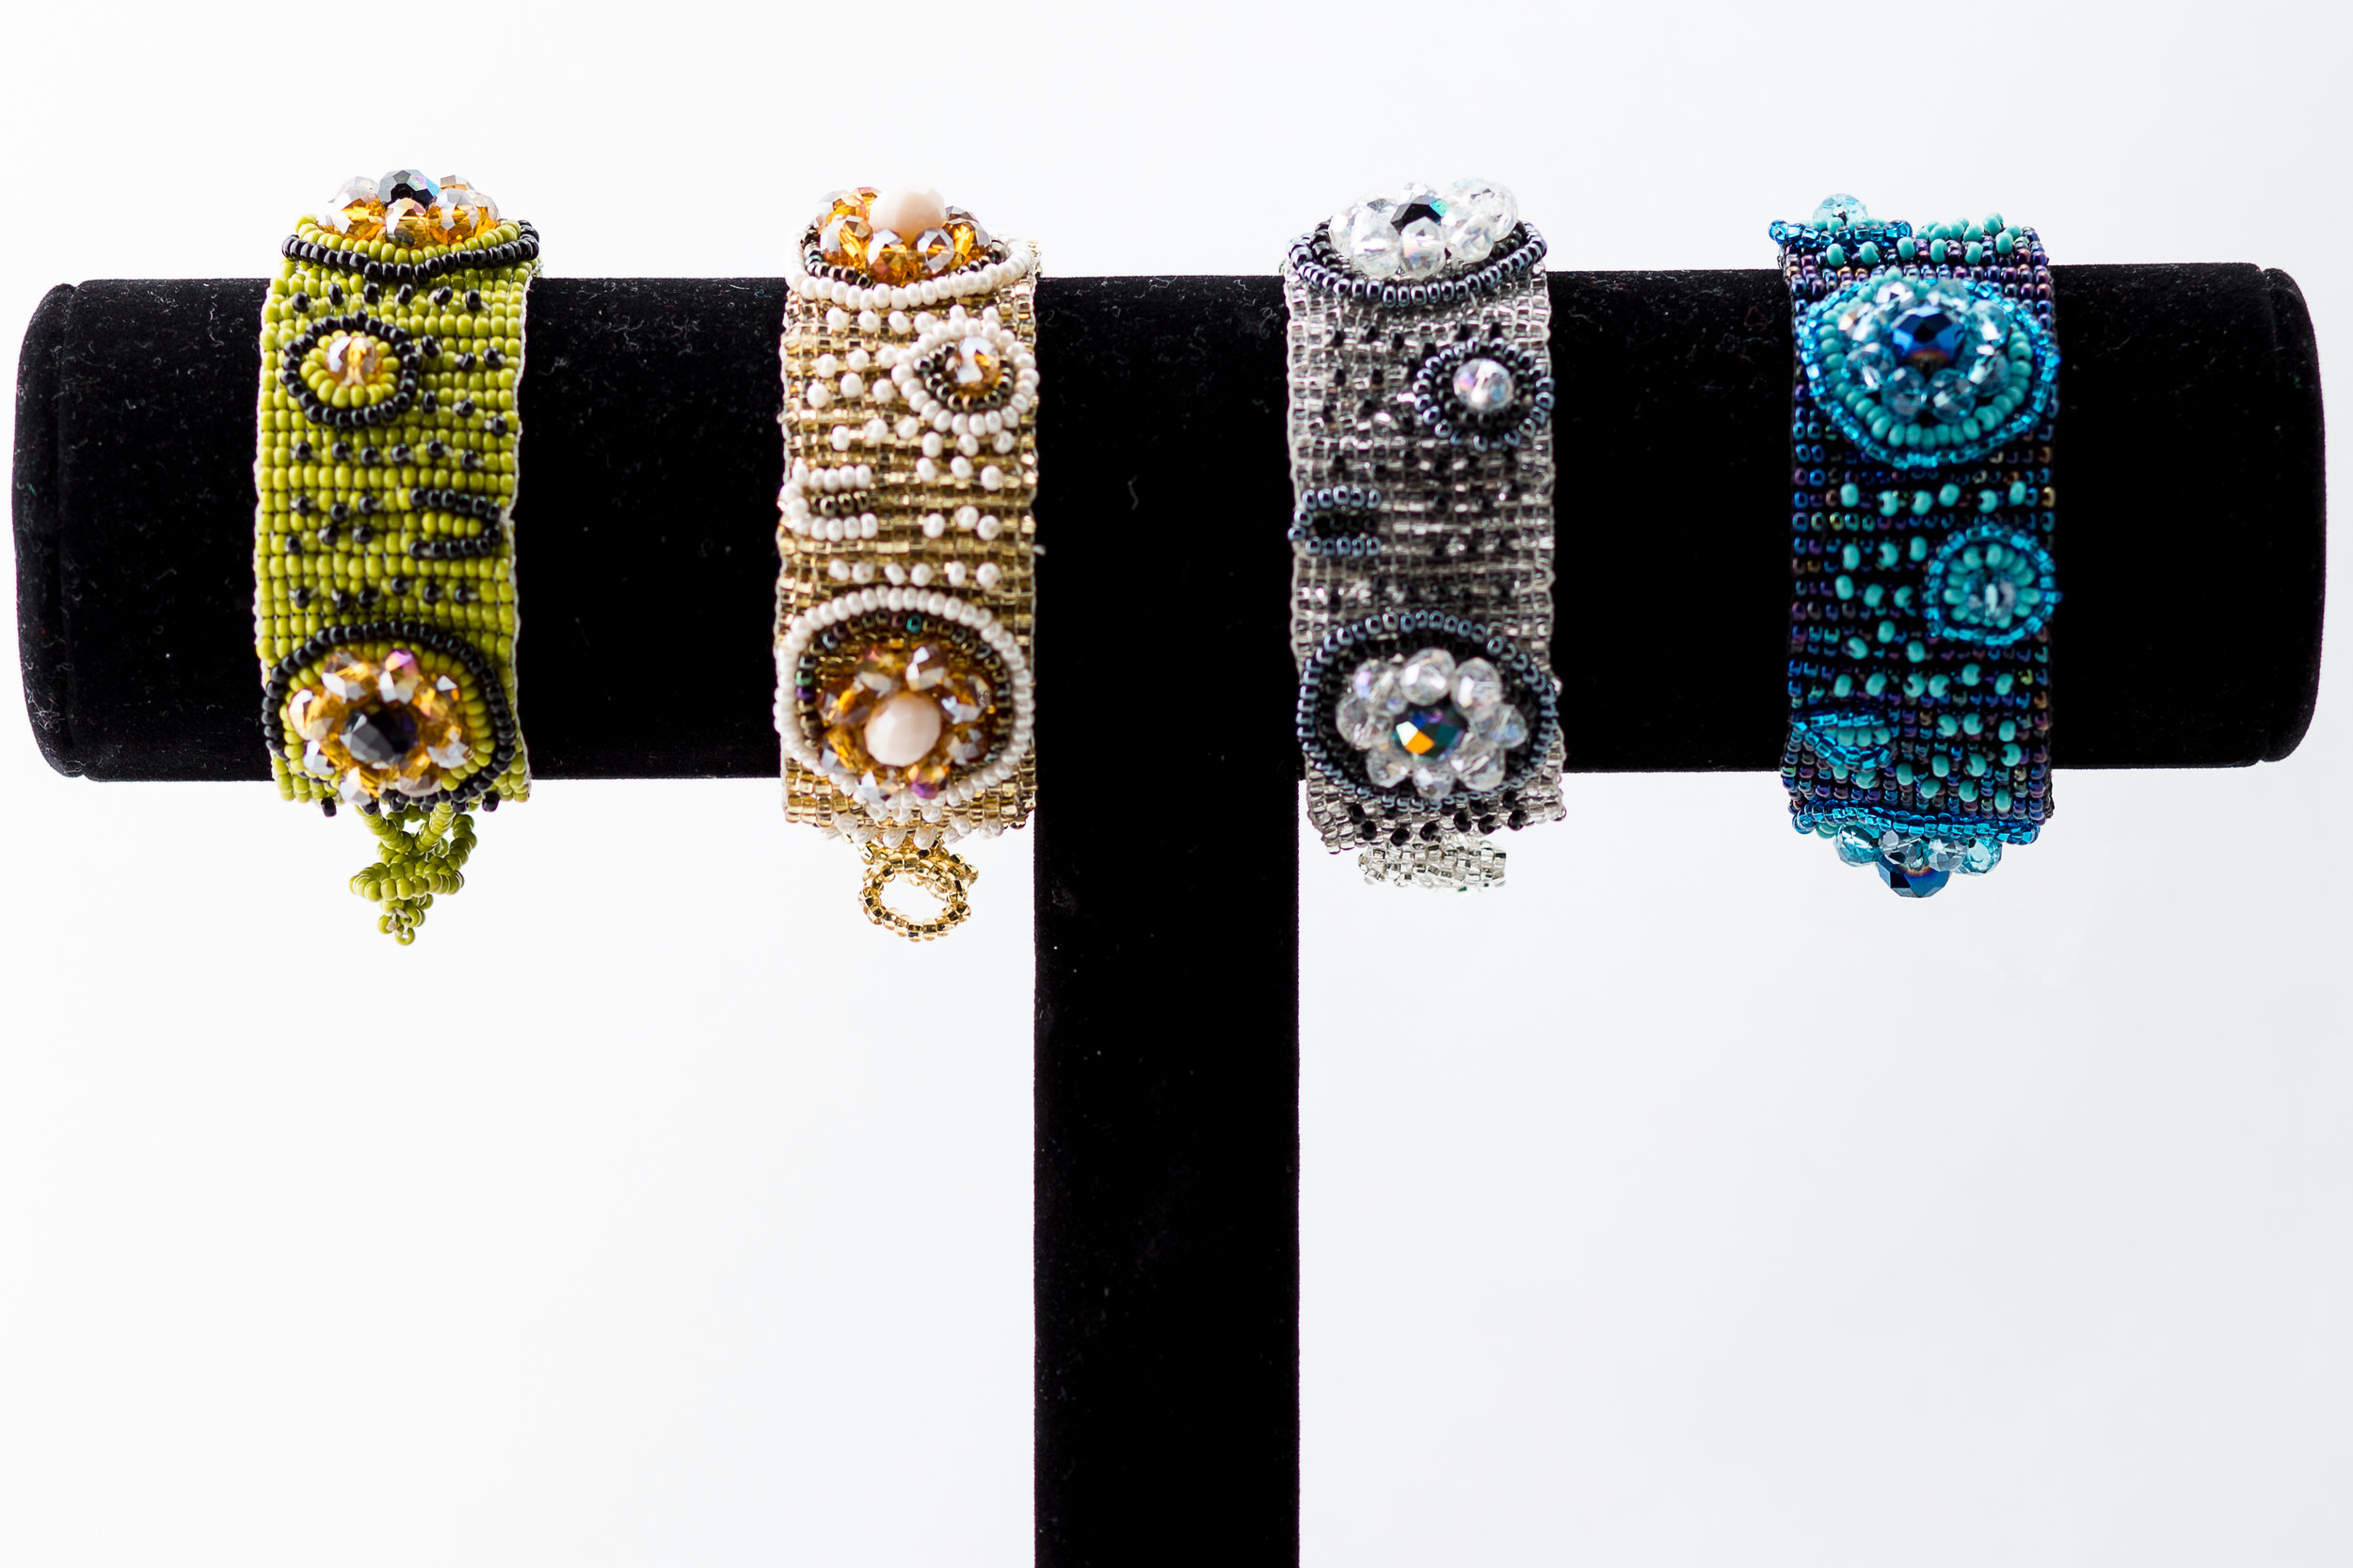 BEADED BRACELET WITH colored STONES (1 IN WIDE). CLASP DESIGN ALLOWS FOR 7, 7 1/2 AND 8 IN LENGTHS.